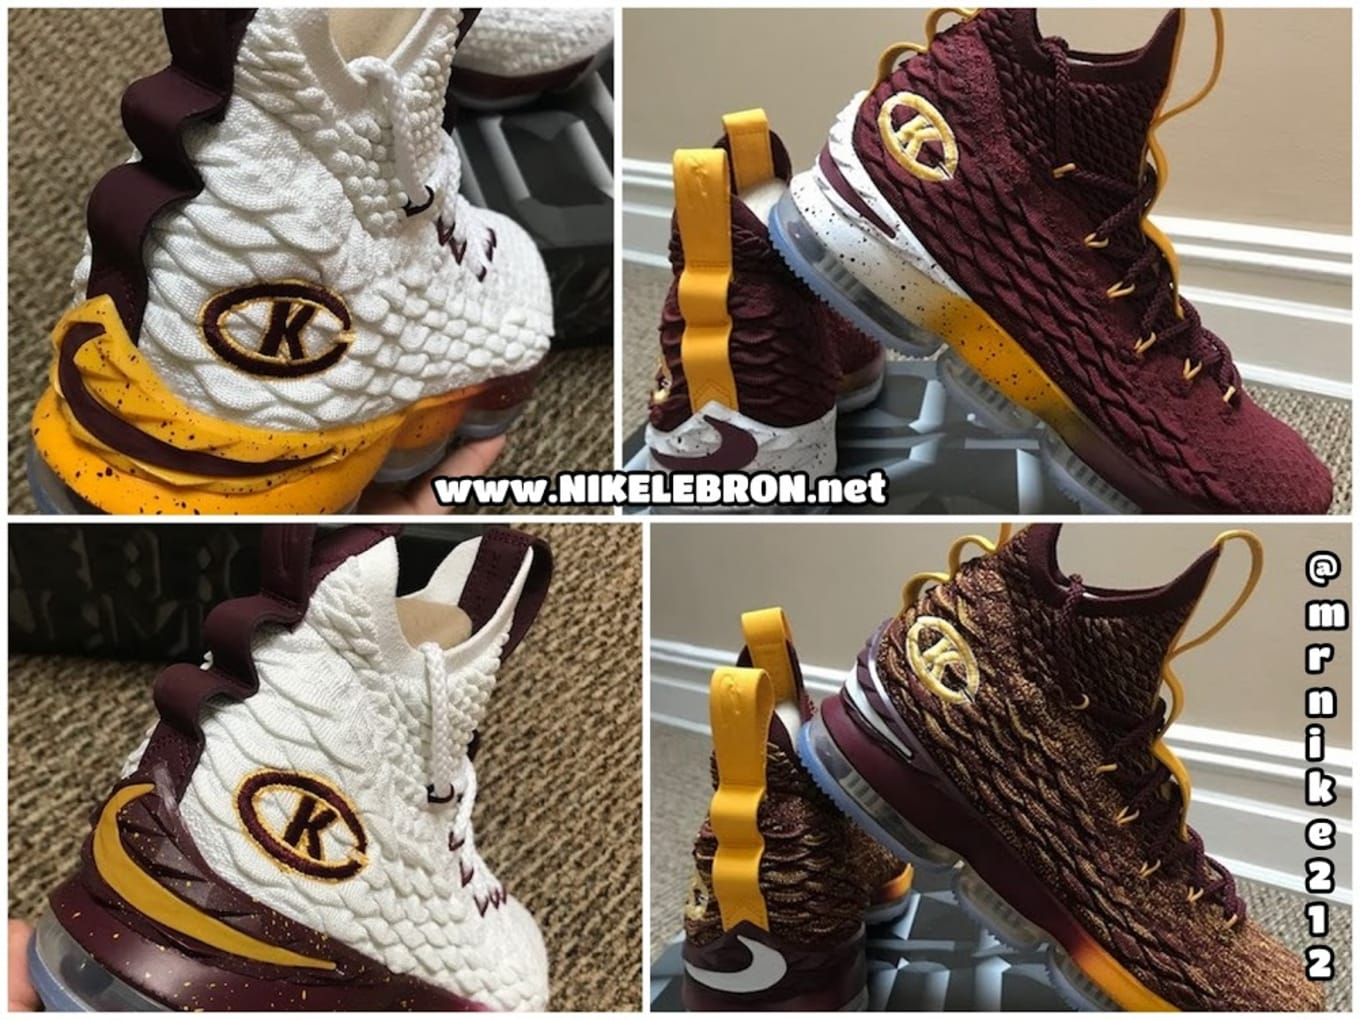 official photos ff10b 2c816 New York High School Has Four Pairs of Exclusive Nike LeBron 15s